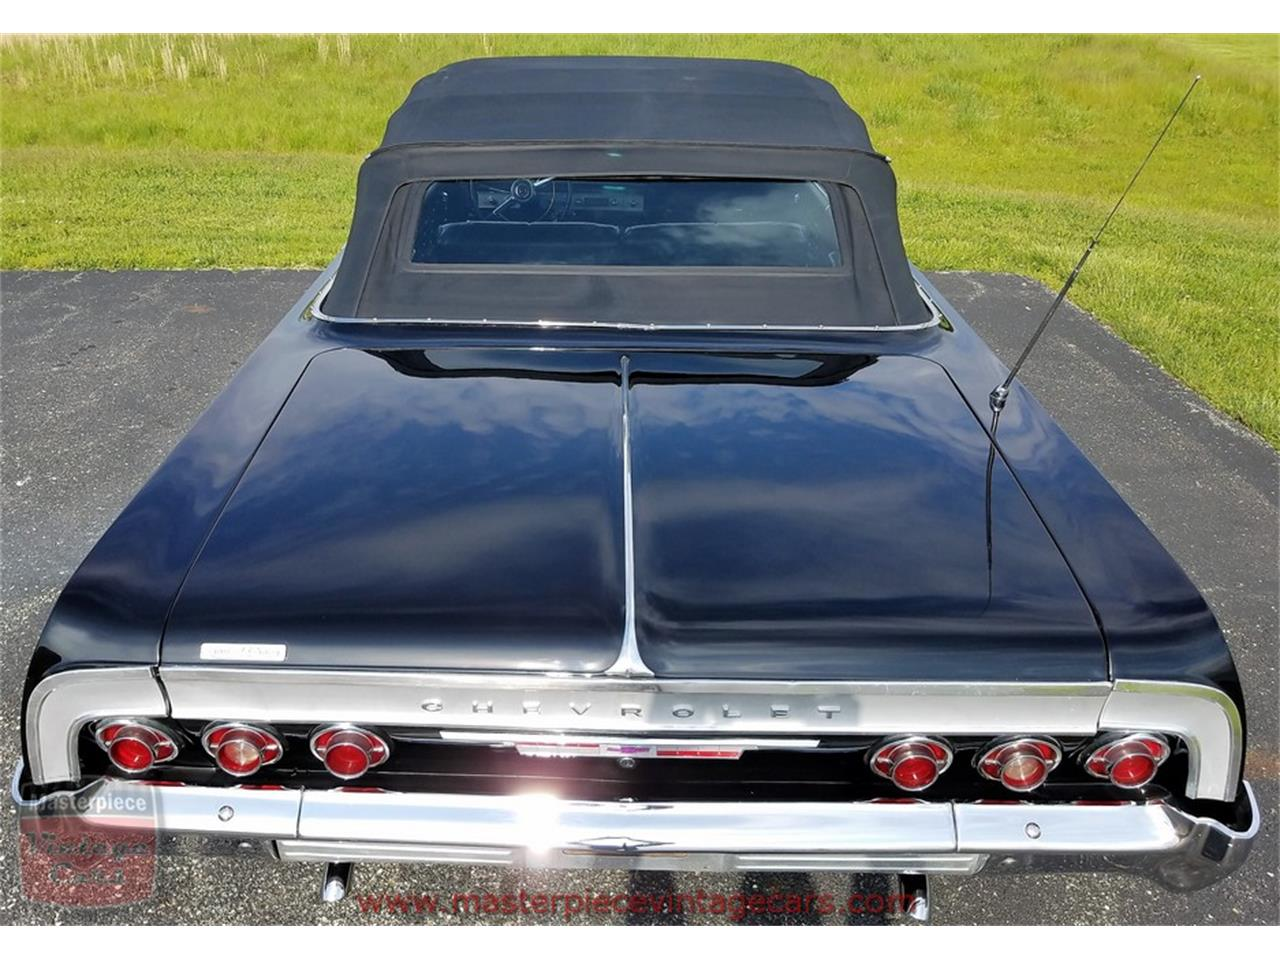 Large Picture of Classic 1964 Impala located in Whiteland Indiana - $44,900.00 Offered by Masterpiece Vintage Cars - LBXB